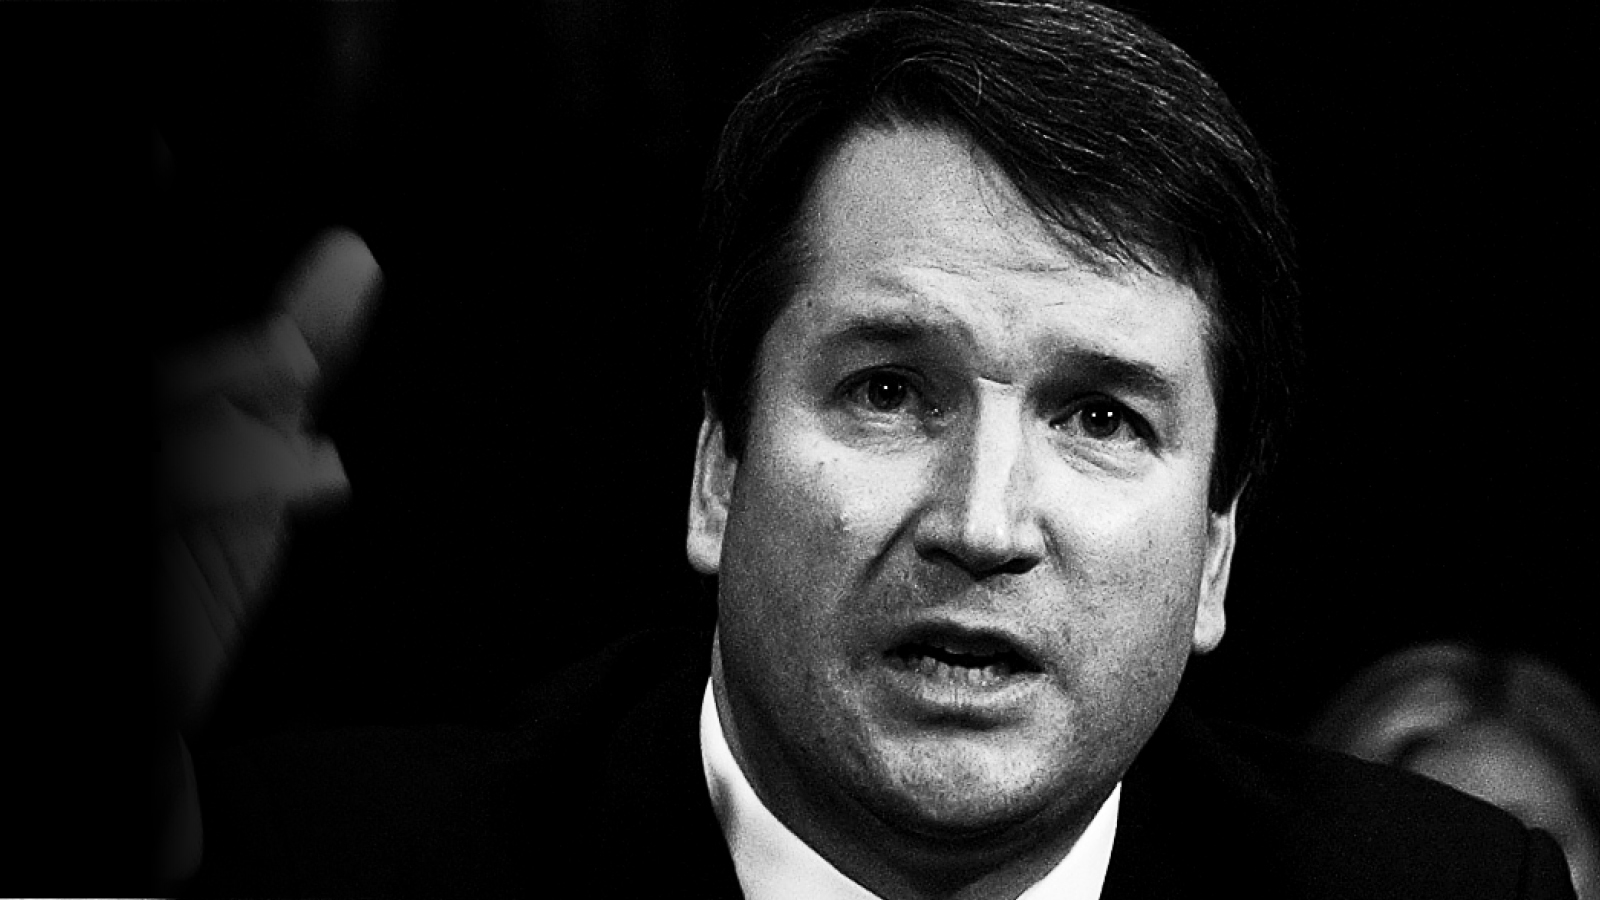 Democrats battle long odds in opposing Brett Kavanaugh